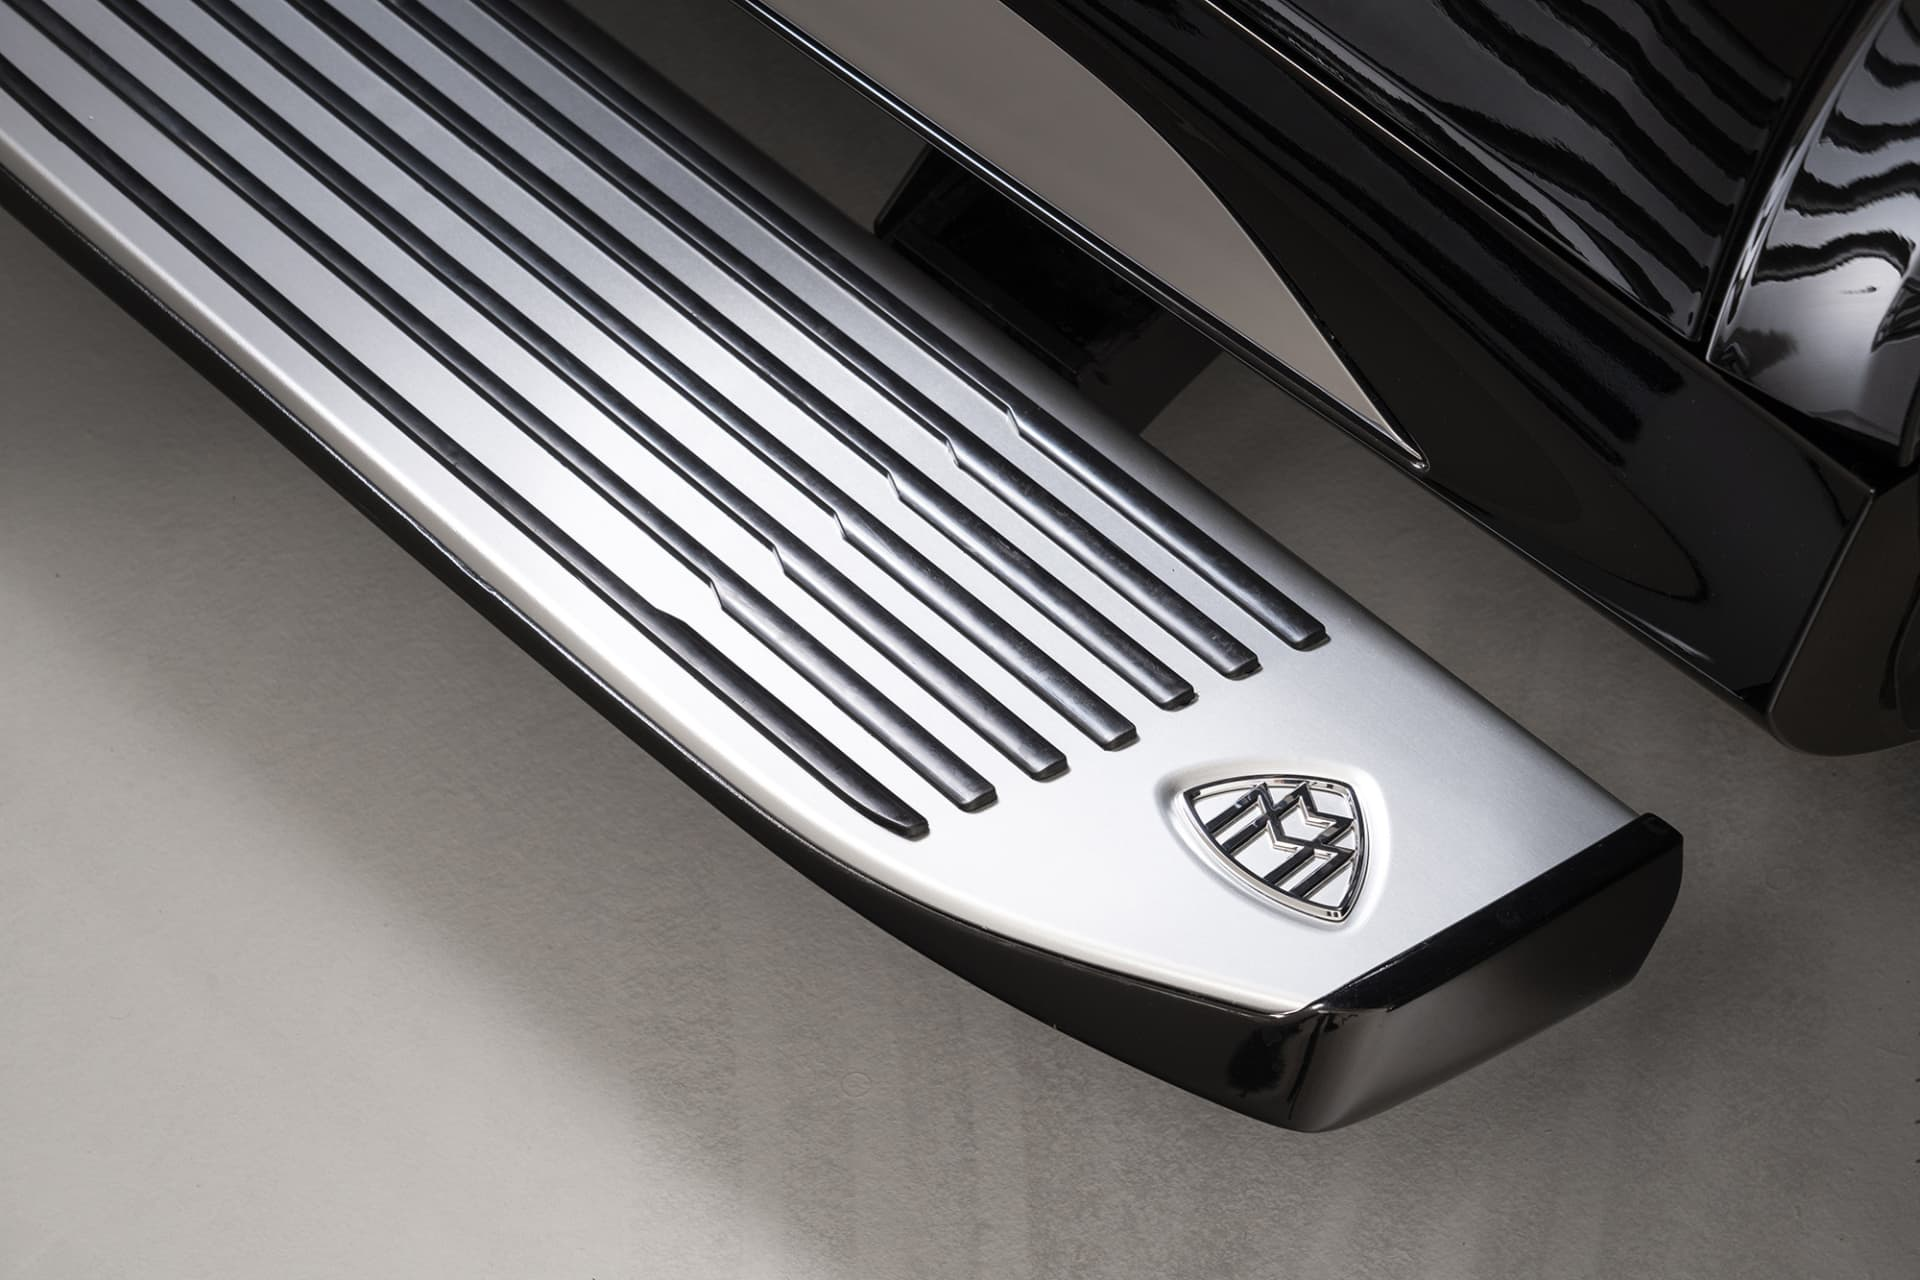 On the electrically foldable sidestep you will find the well-used Maybach emblem.